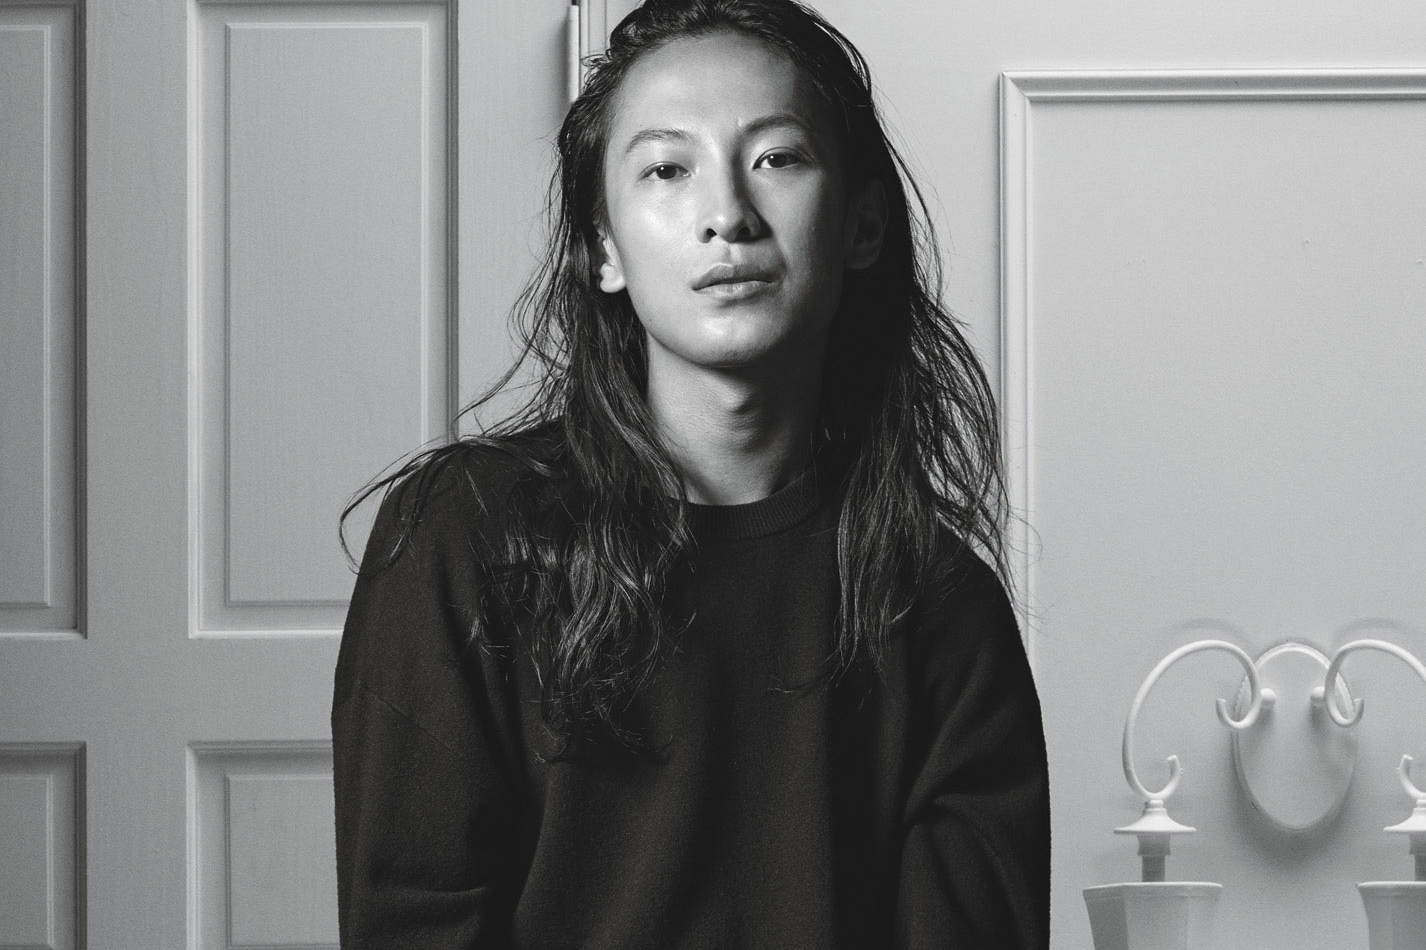 Alexander Wang is an American fashion designer who was born in As a Native California, Alex was born and raised in San Francisco and has a Chinese-American family heritage. At the age of 18, he moved to New York City where he attended Parsons Design School and partook in .